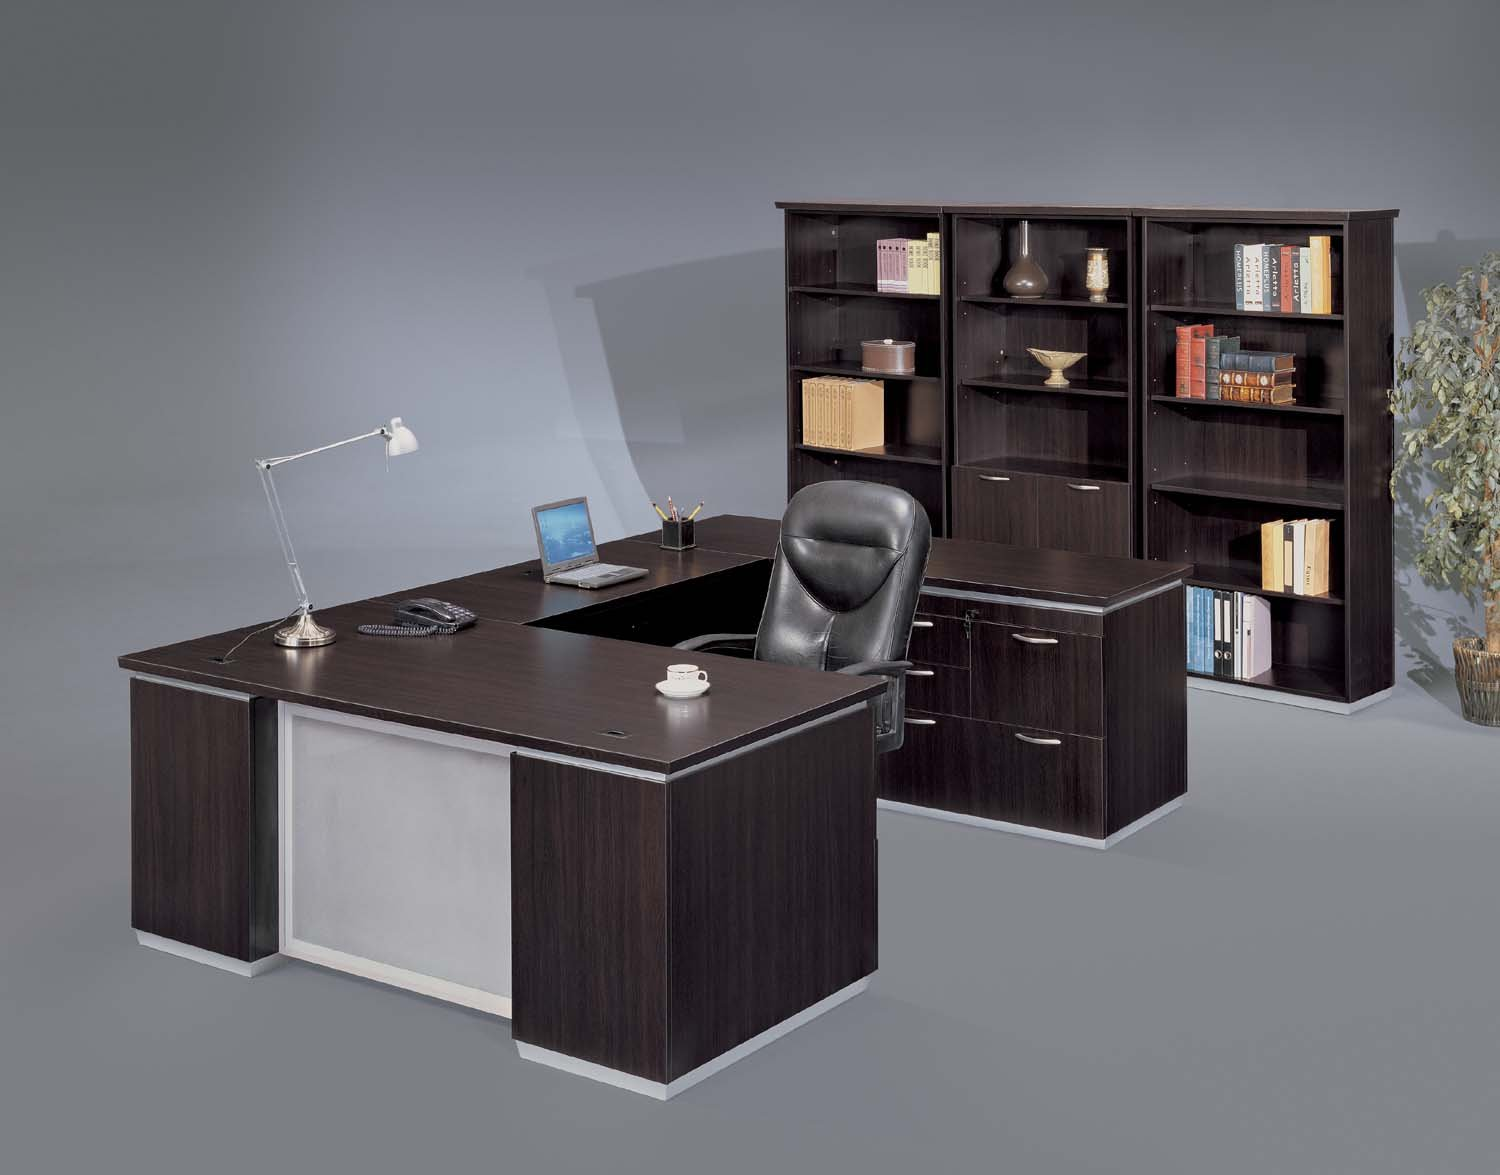 Flexsteel Pimlico  Right Personal File U Desk with Frosted Glass Modesty Panel